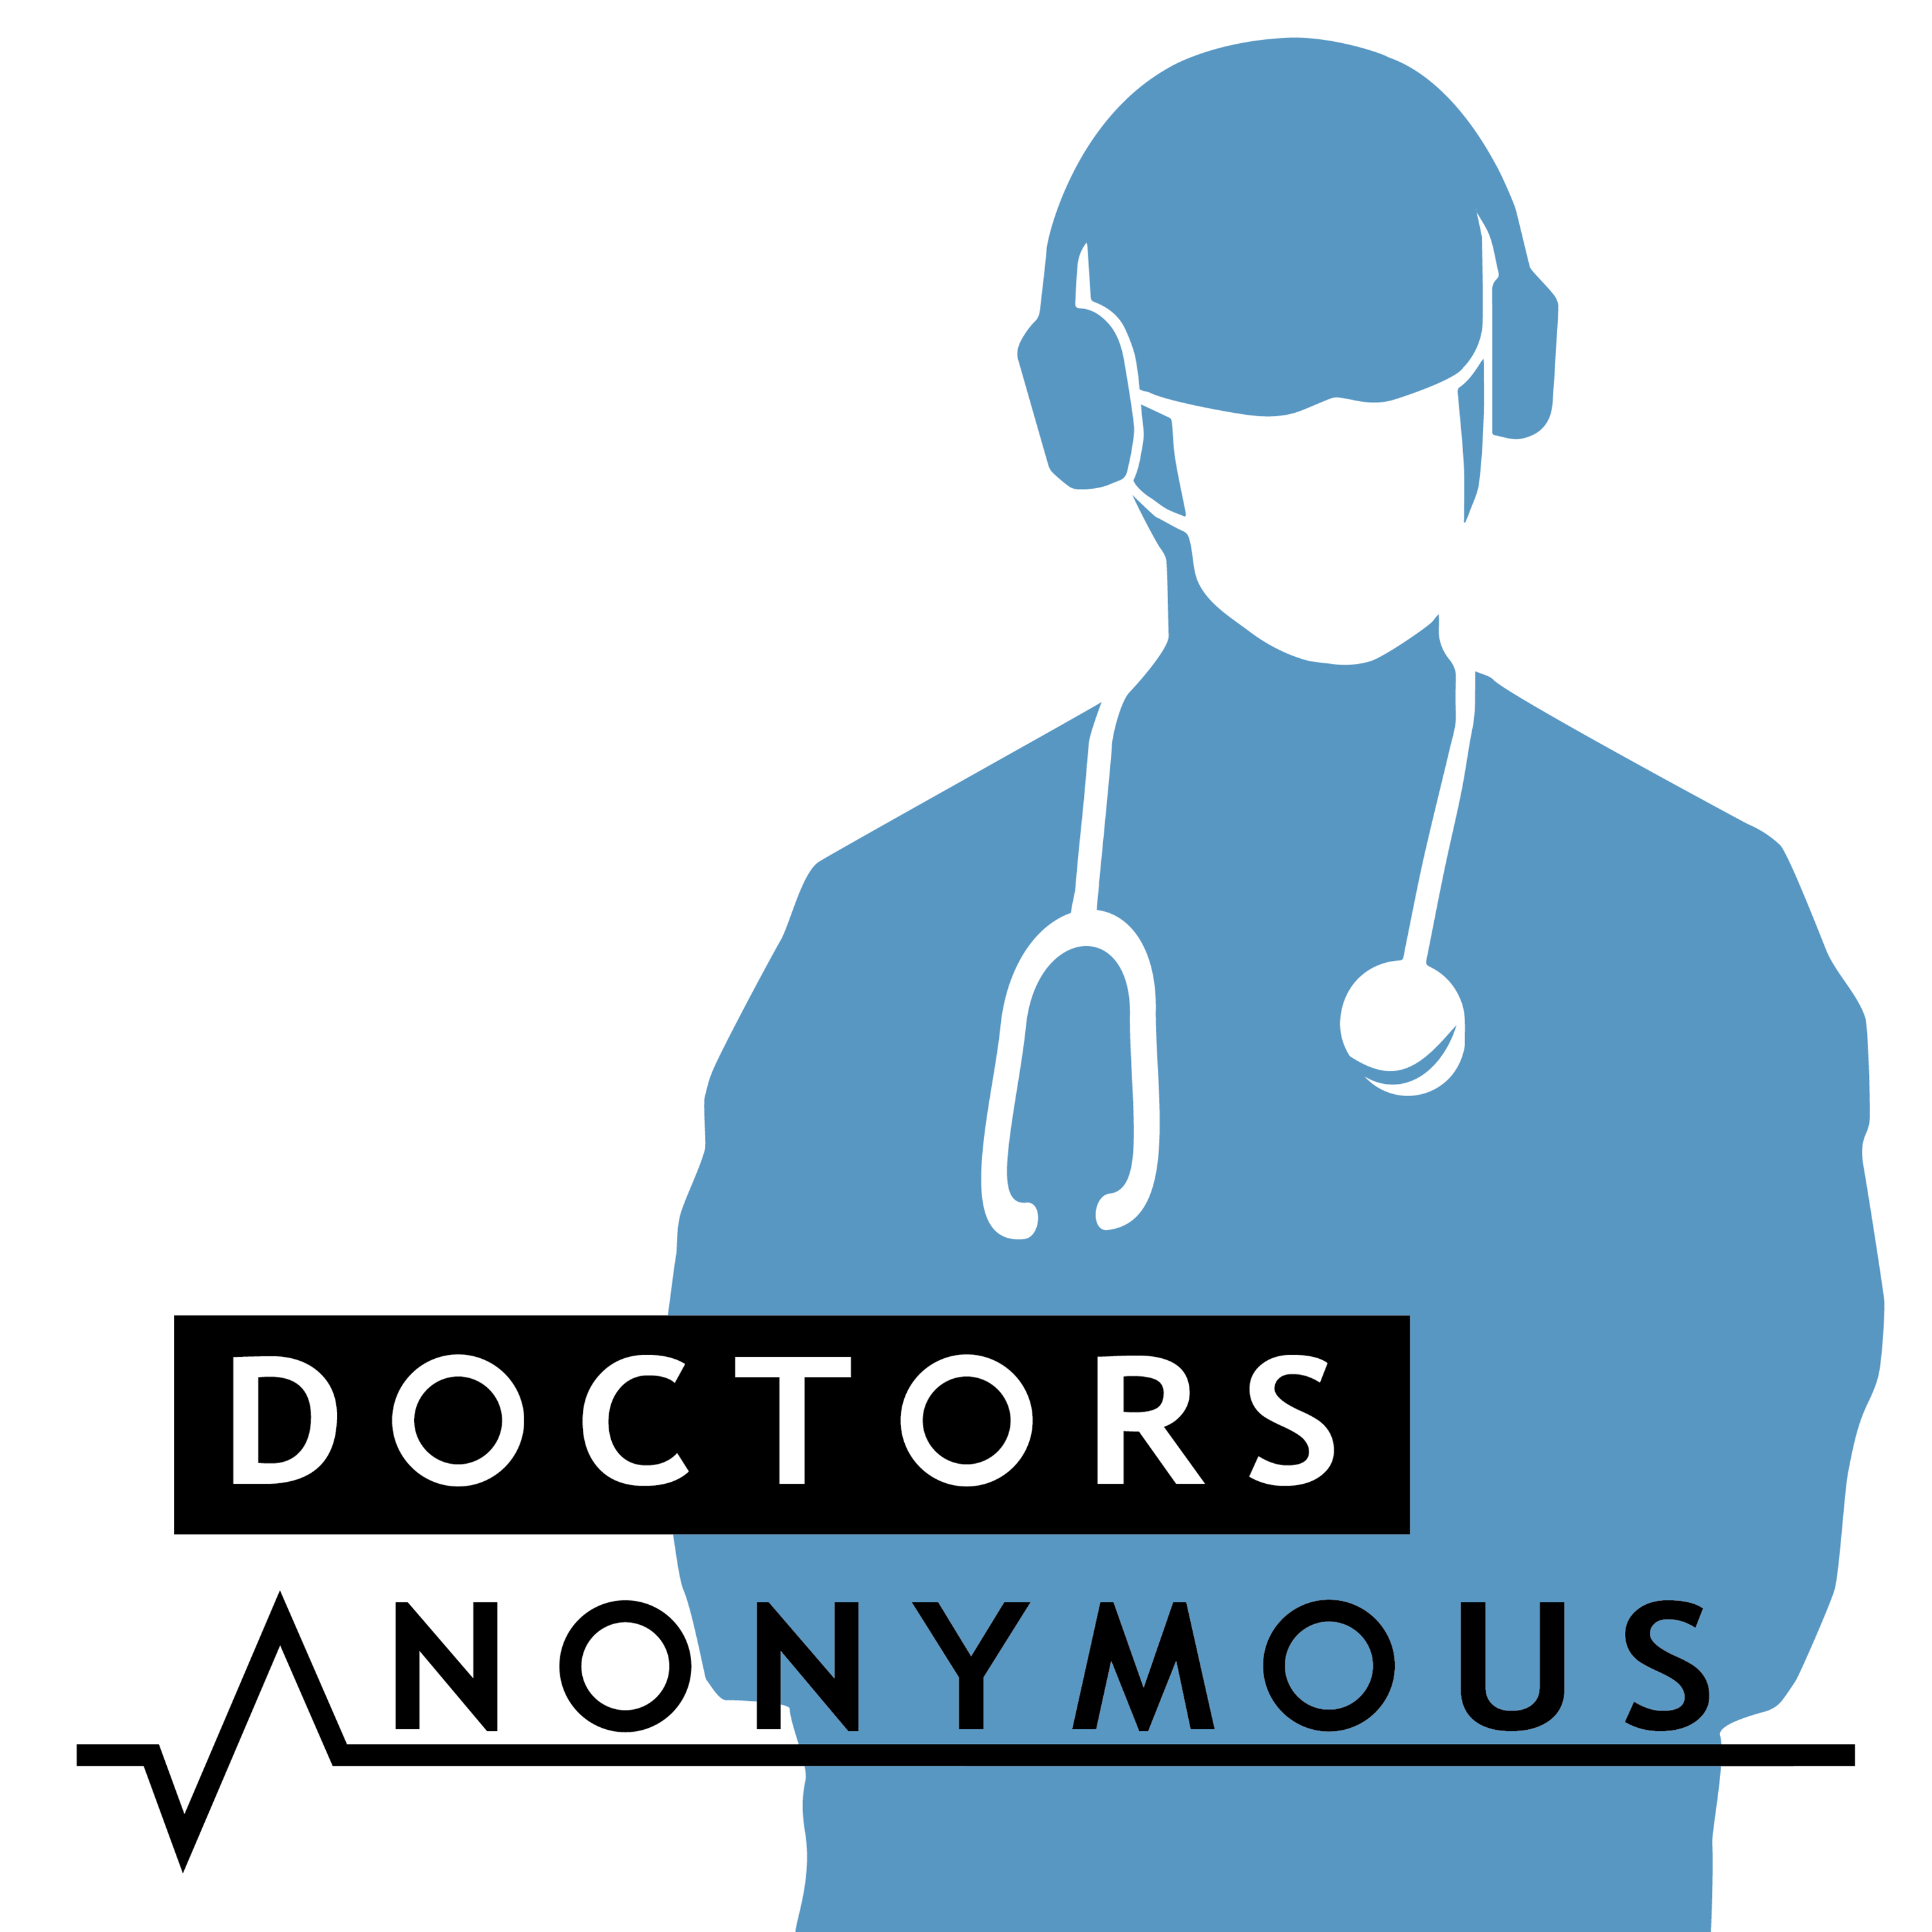 Episode 5: The Doctor Becomes The Patient